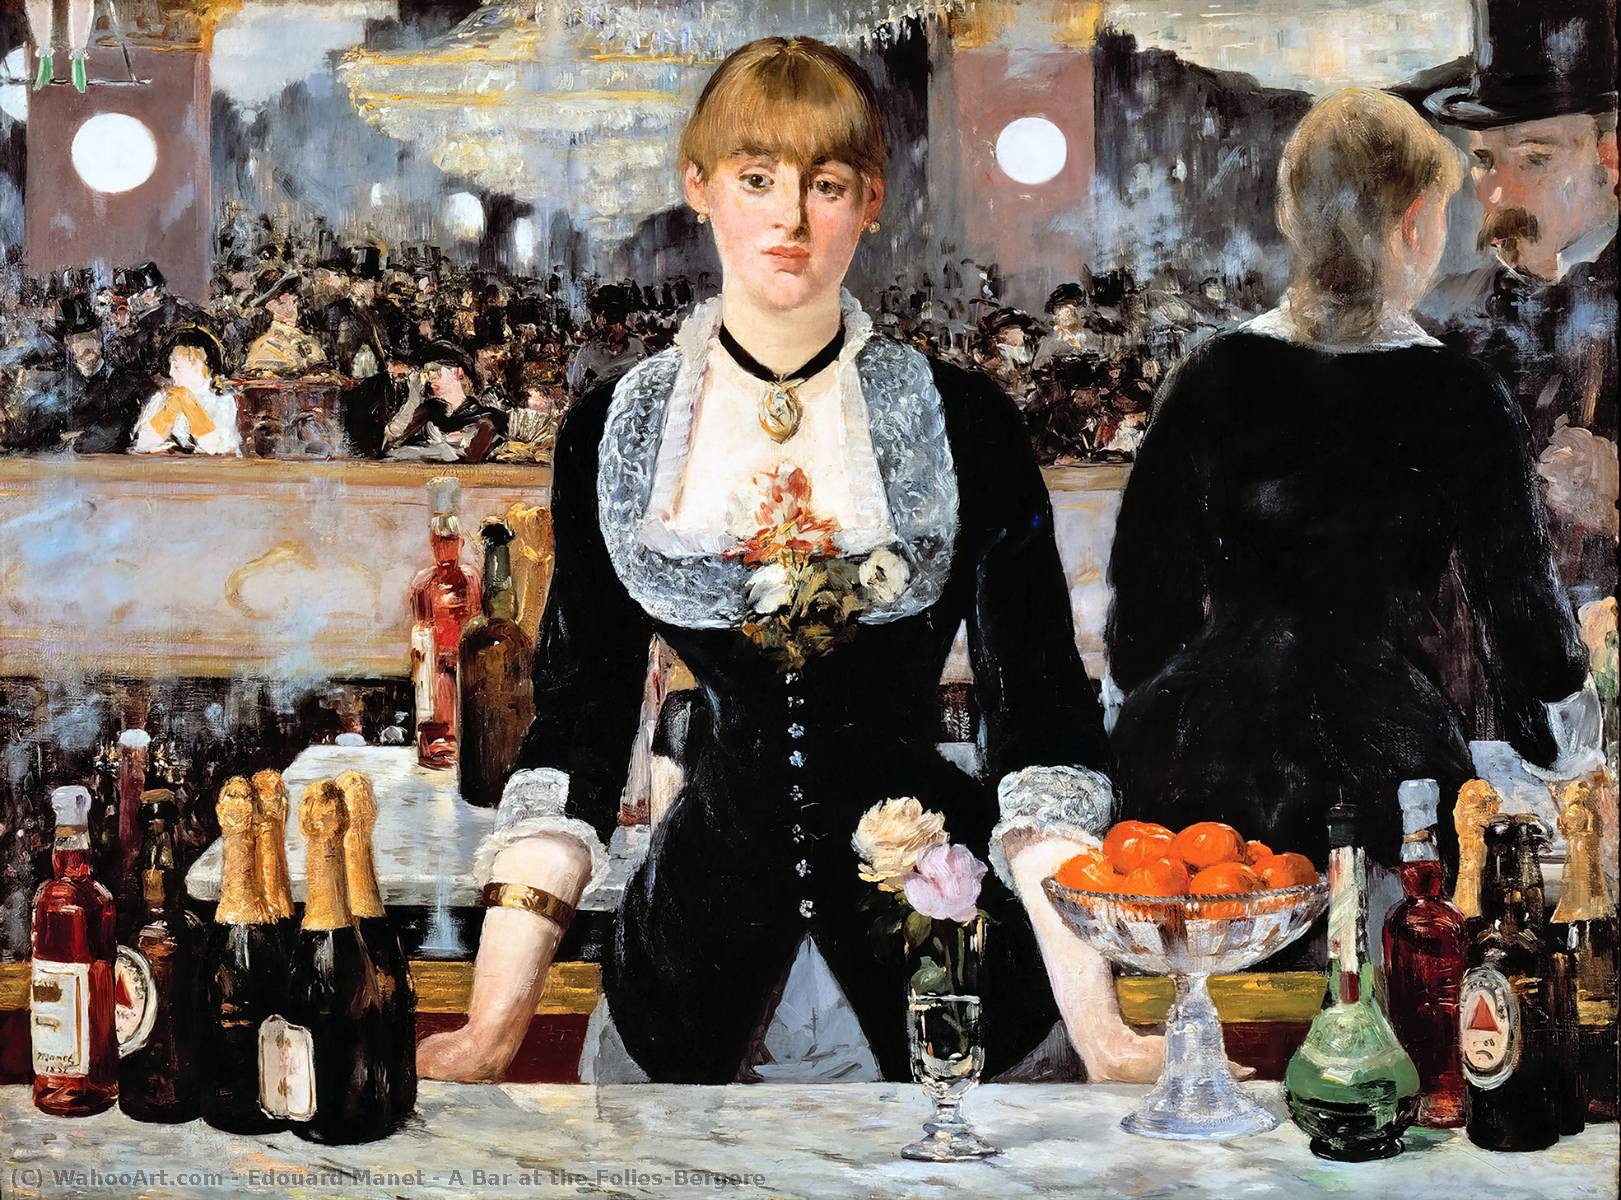 A Bar at the Folies-Bergere, 1882 by Edouard Manet (1832-1883, France) | Reproductions Edouard Manet | WahooArt.com